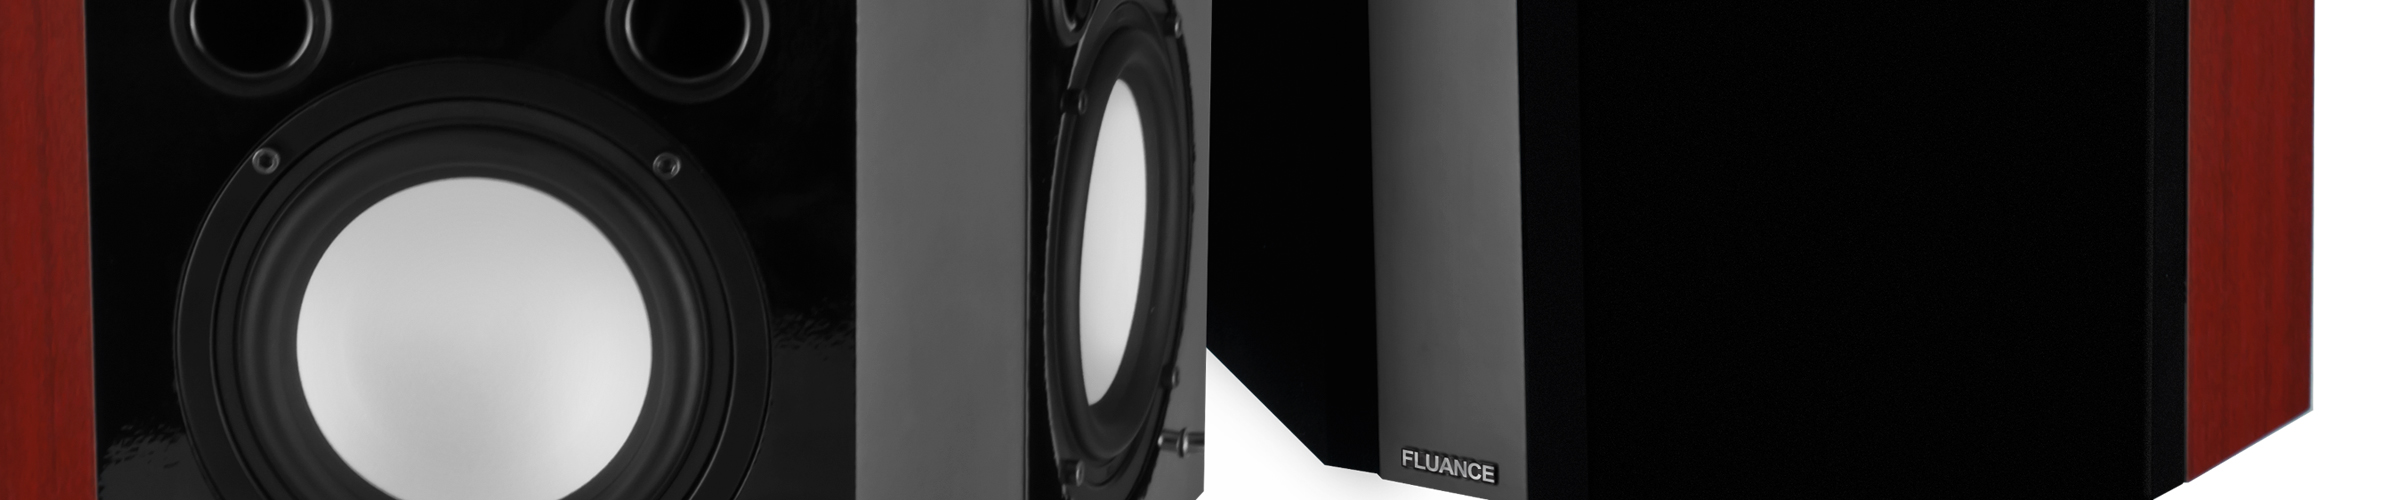 XLBP-DW Bipolar Surround Sound Speakers Midrange